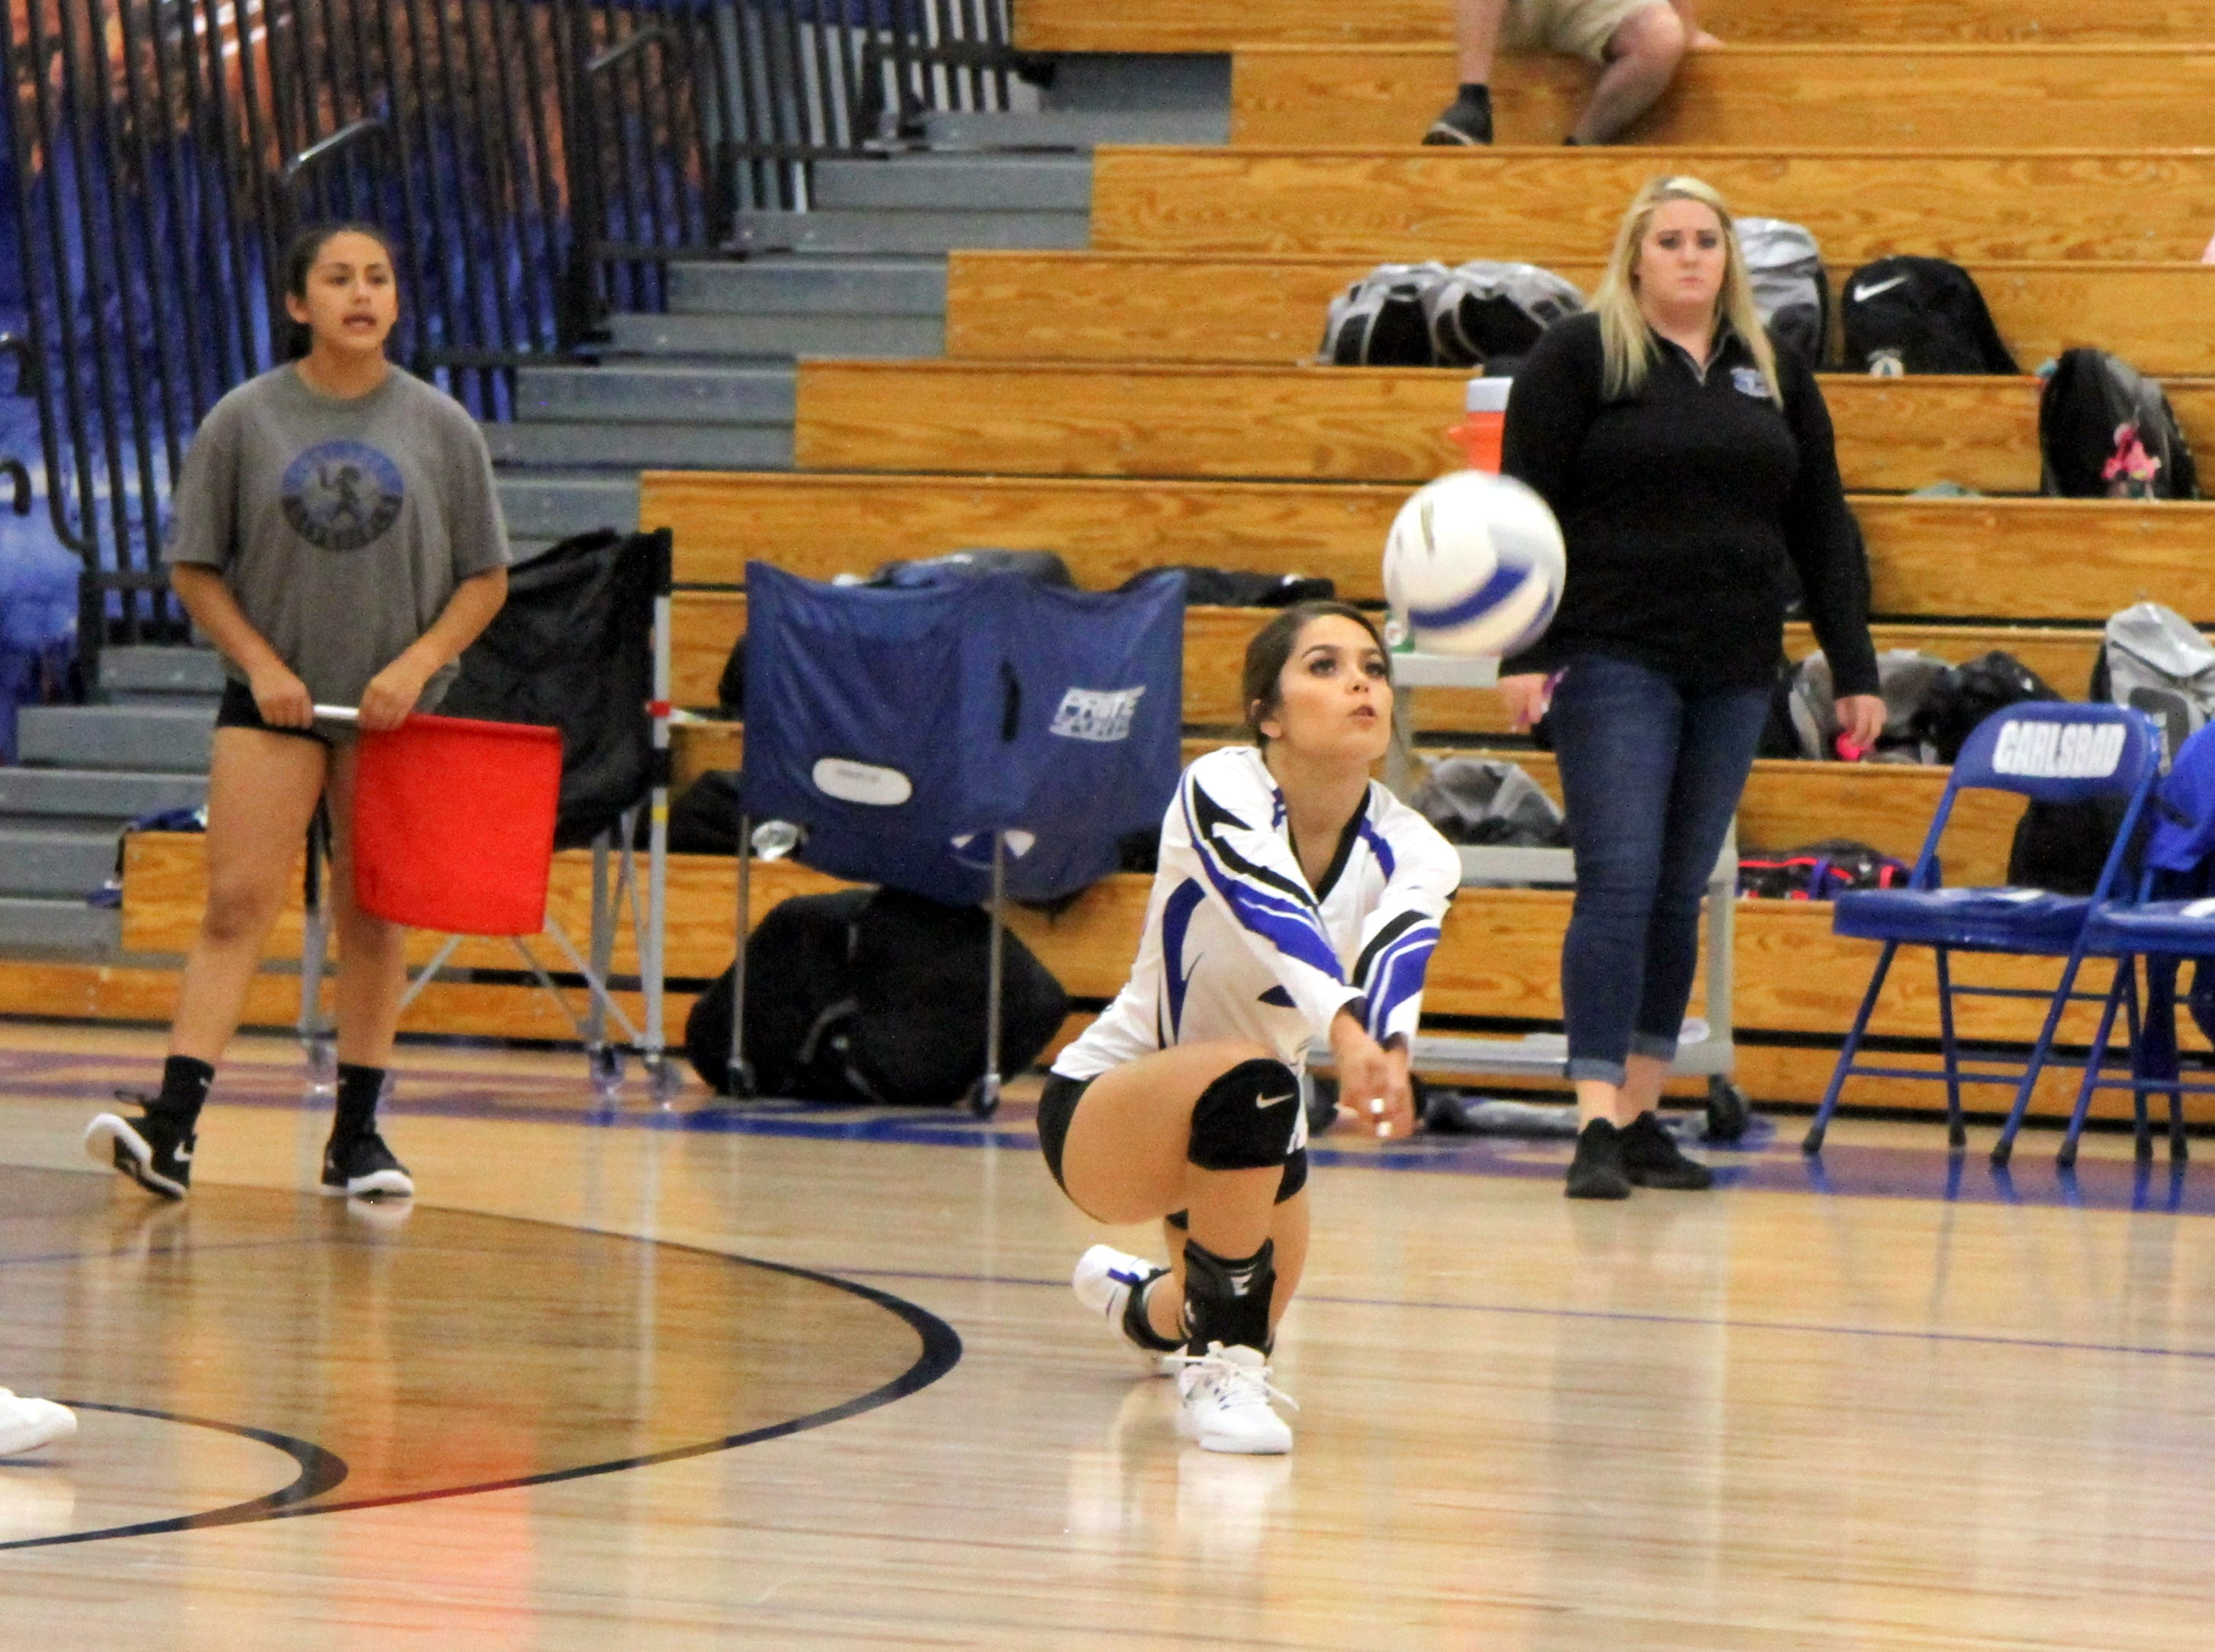 Alycia Cruz digs a ball in the second set of Thursday's match against Pebble Hills.